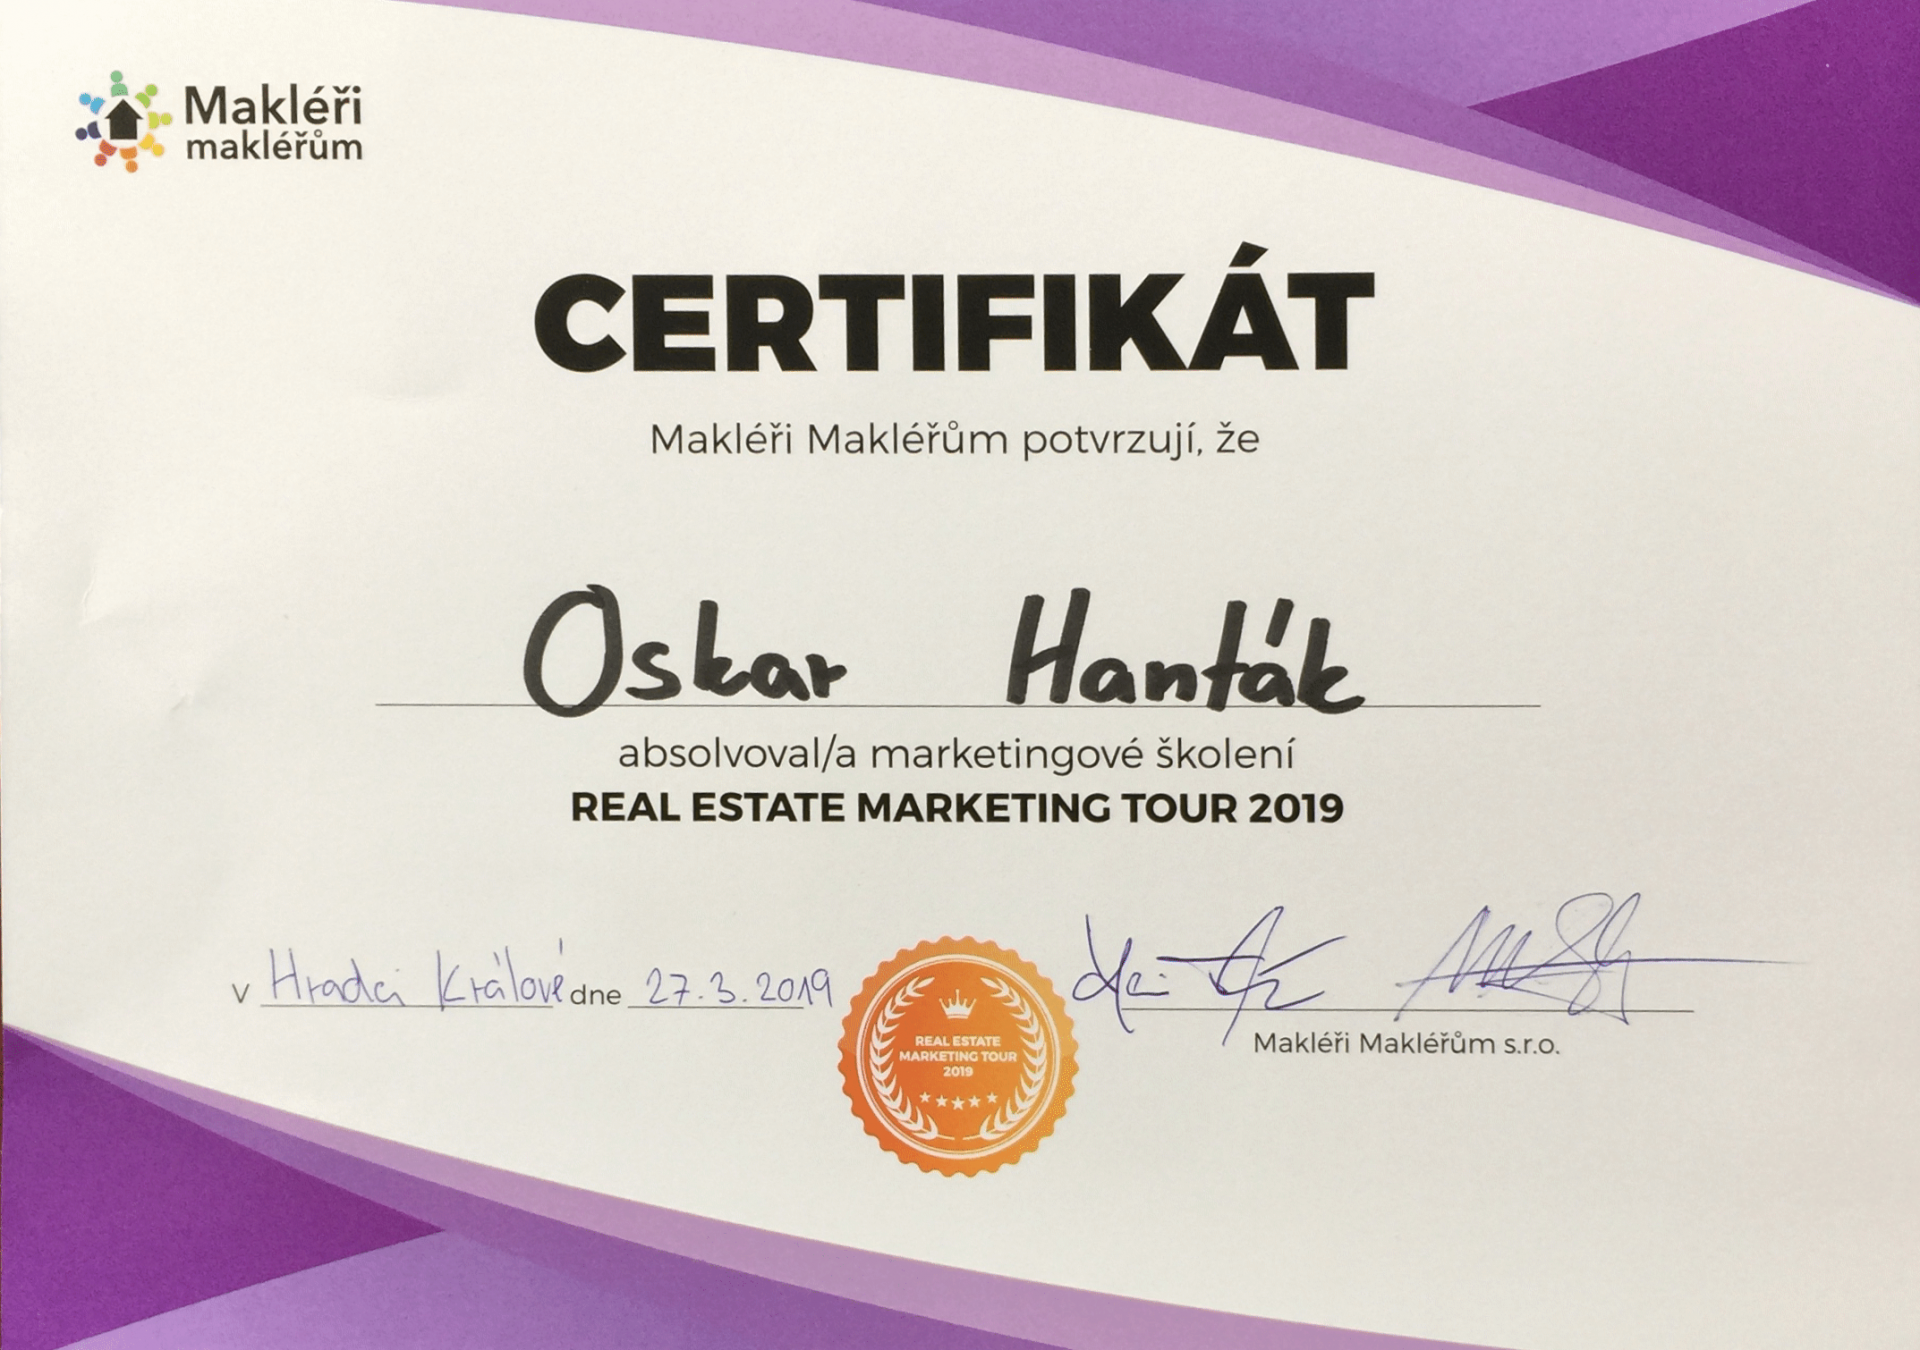 real_estate_marketing_tour_2019_Hradec_Kralove